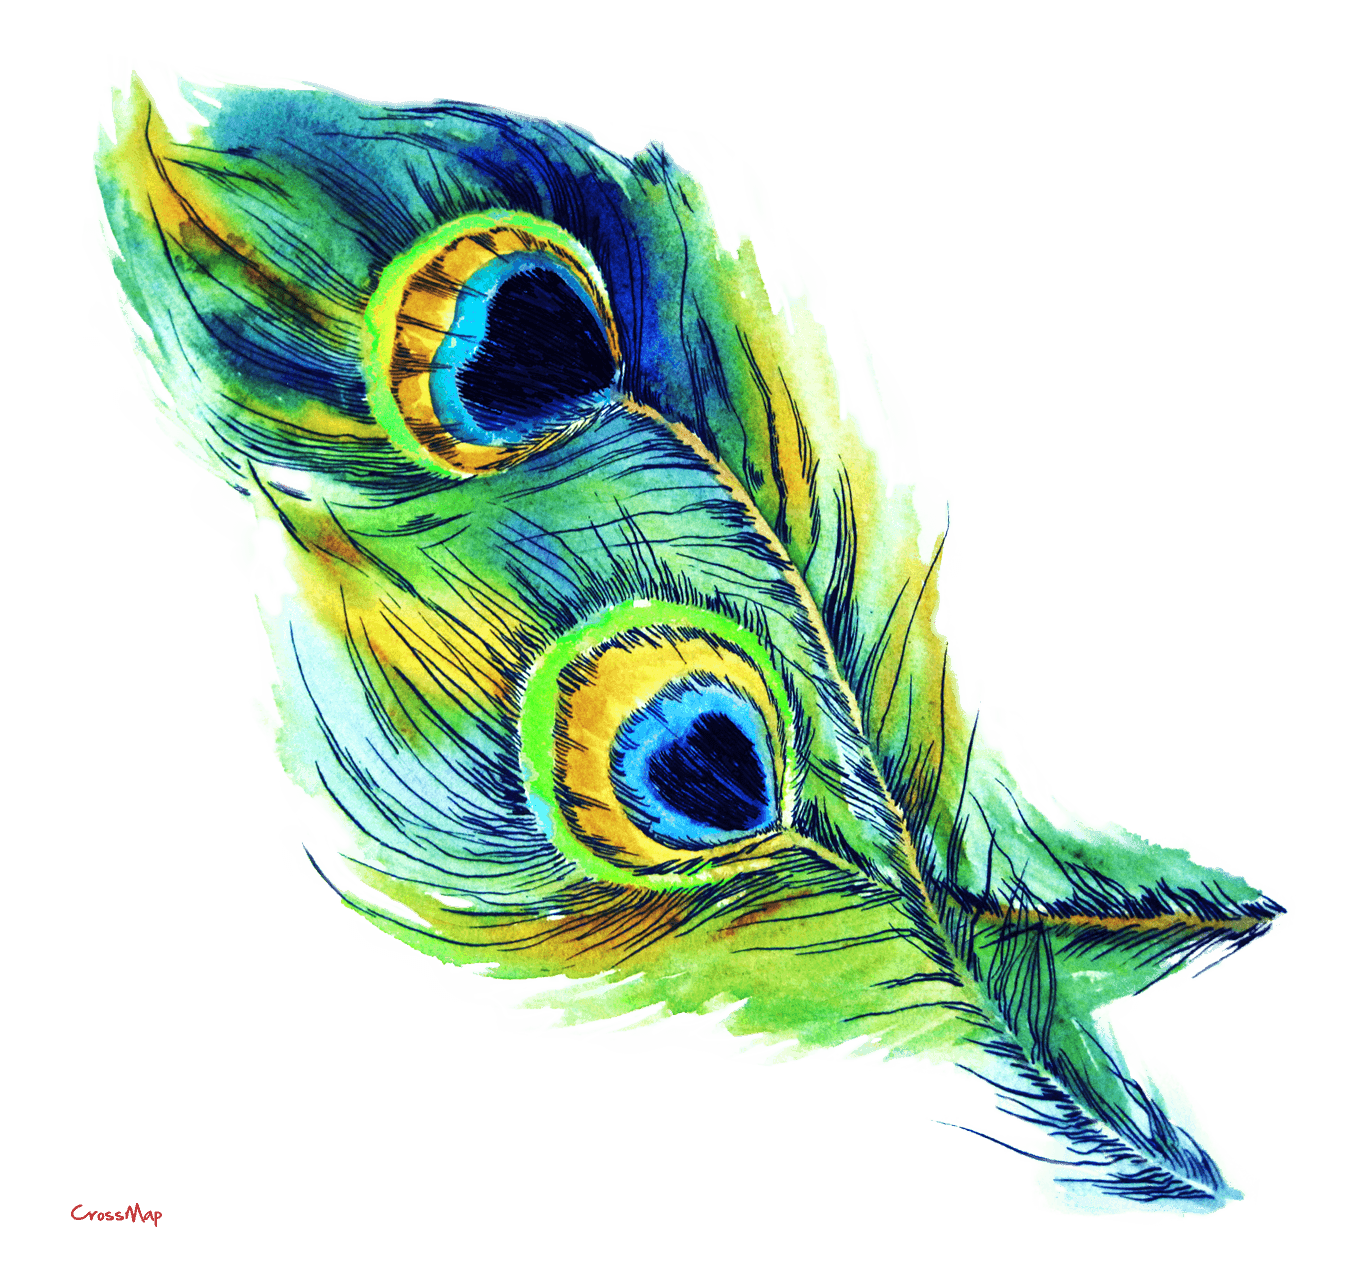 Wallpapers Of Peacock Feathers HD 2017.